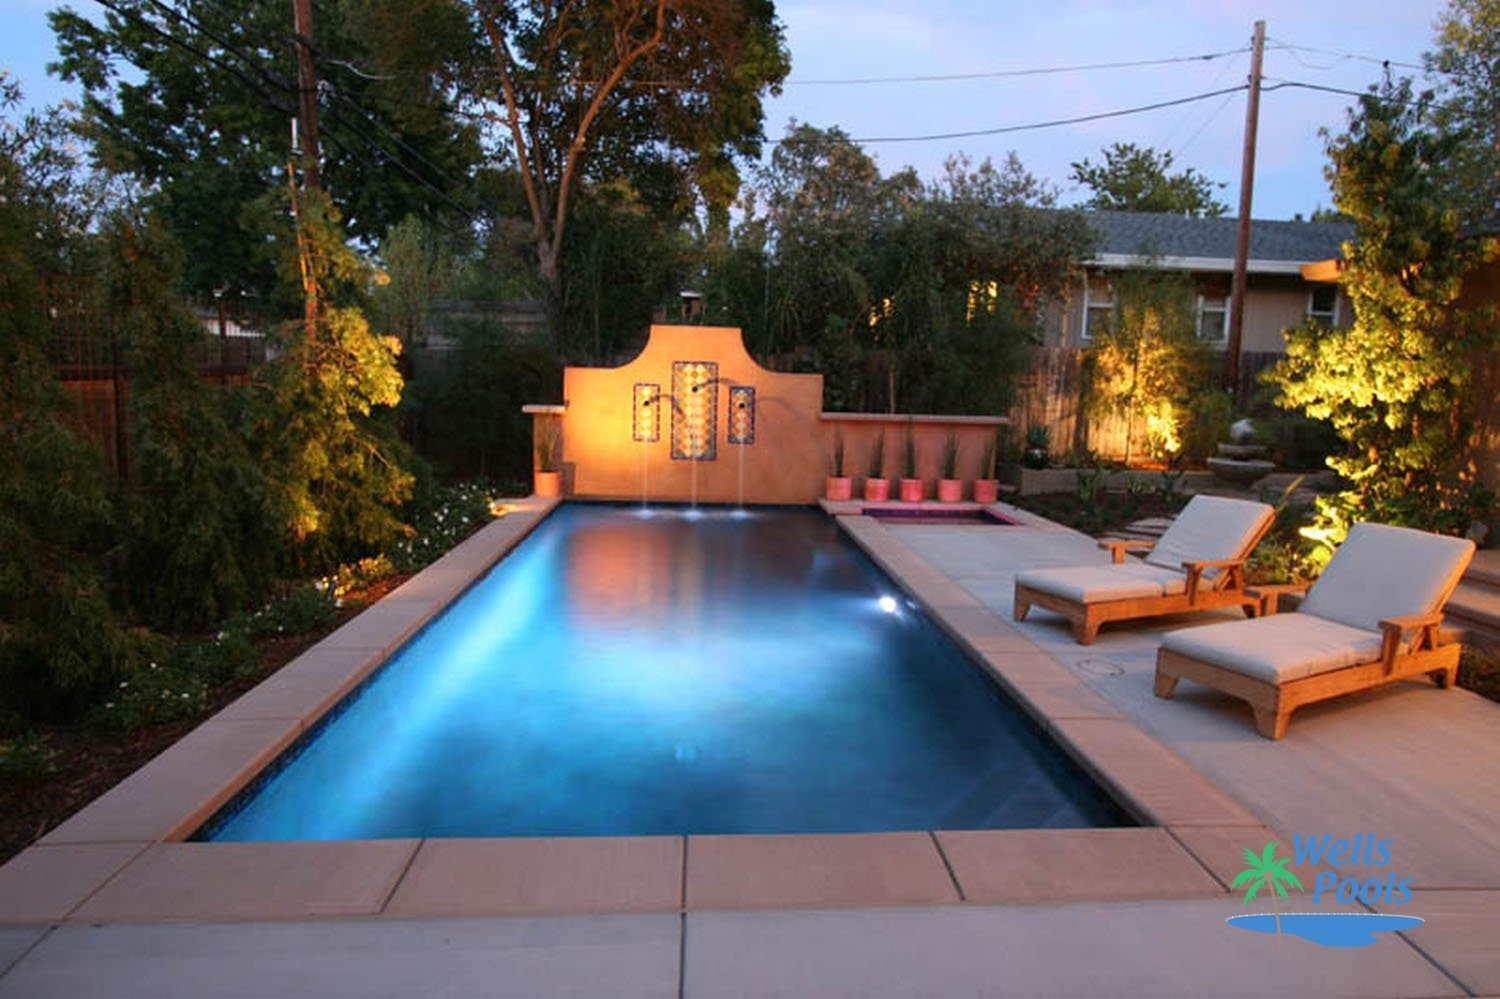 Semi Inground Pool Ideas | Partial Inground Above Ground Pools | Diy Semi Inground Pool